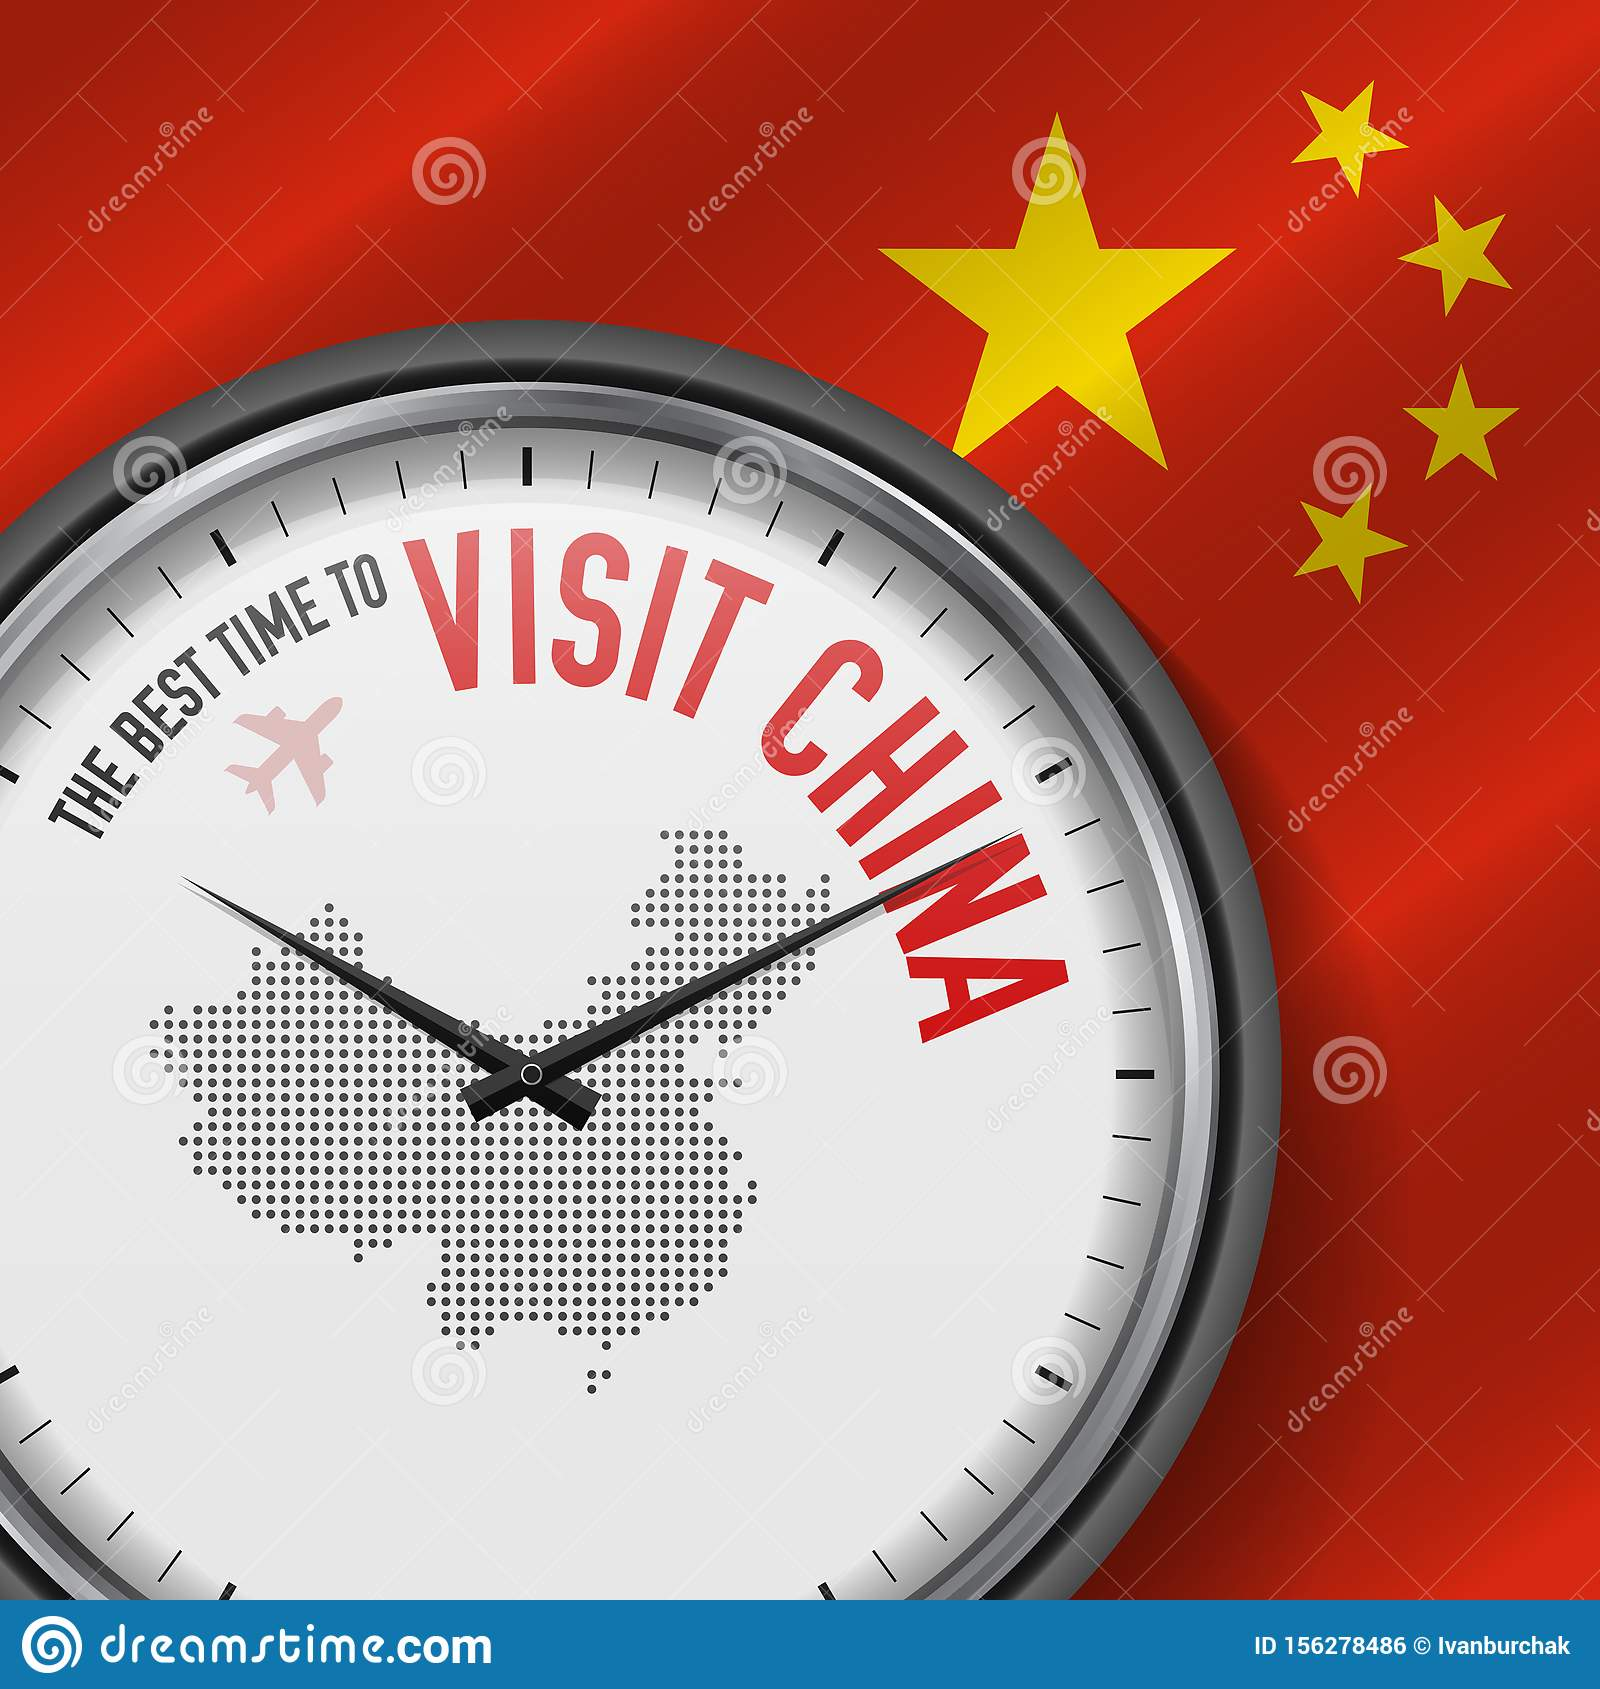 The Best Time to Visit China. Flight, Tour to China. Vector Illustration